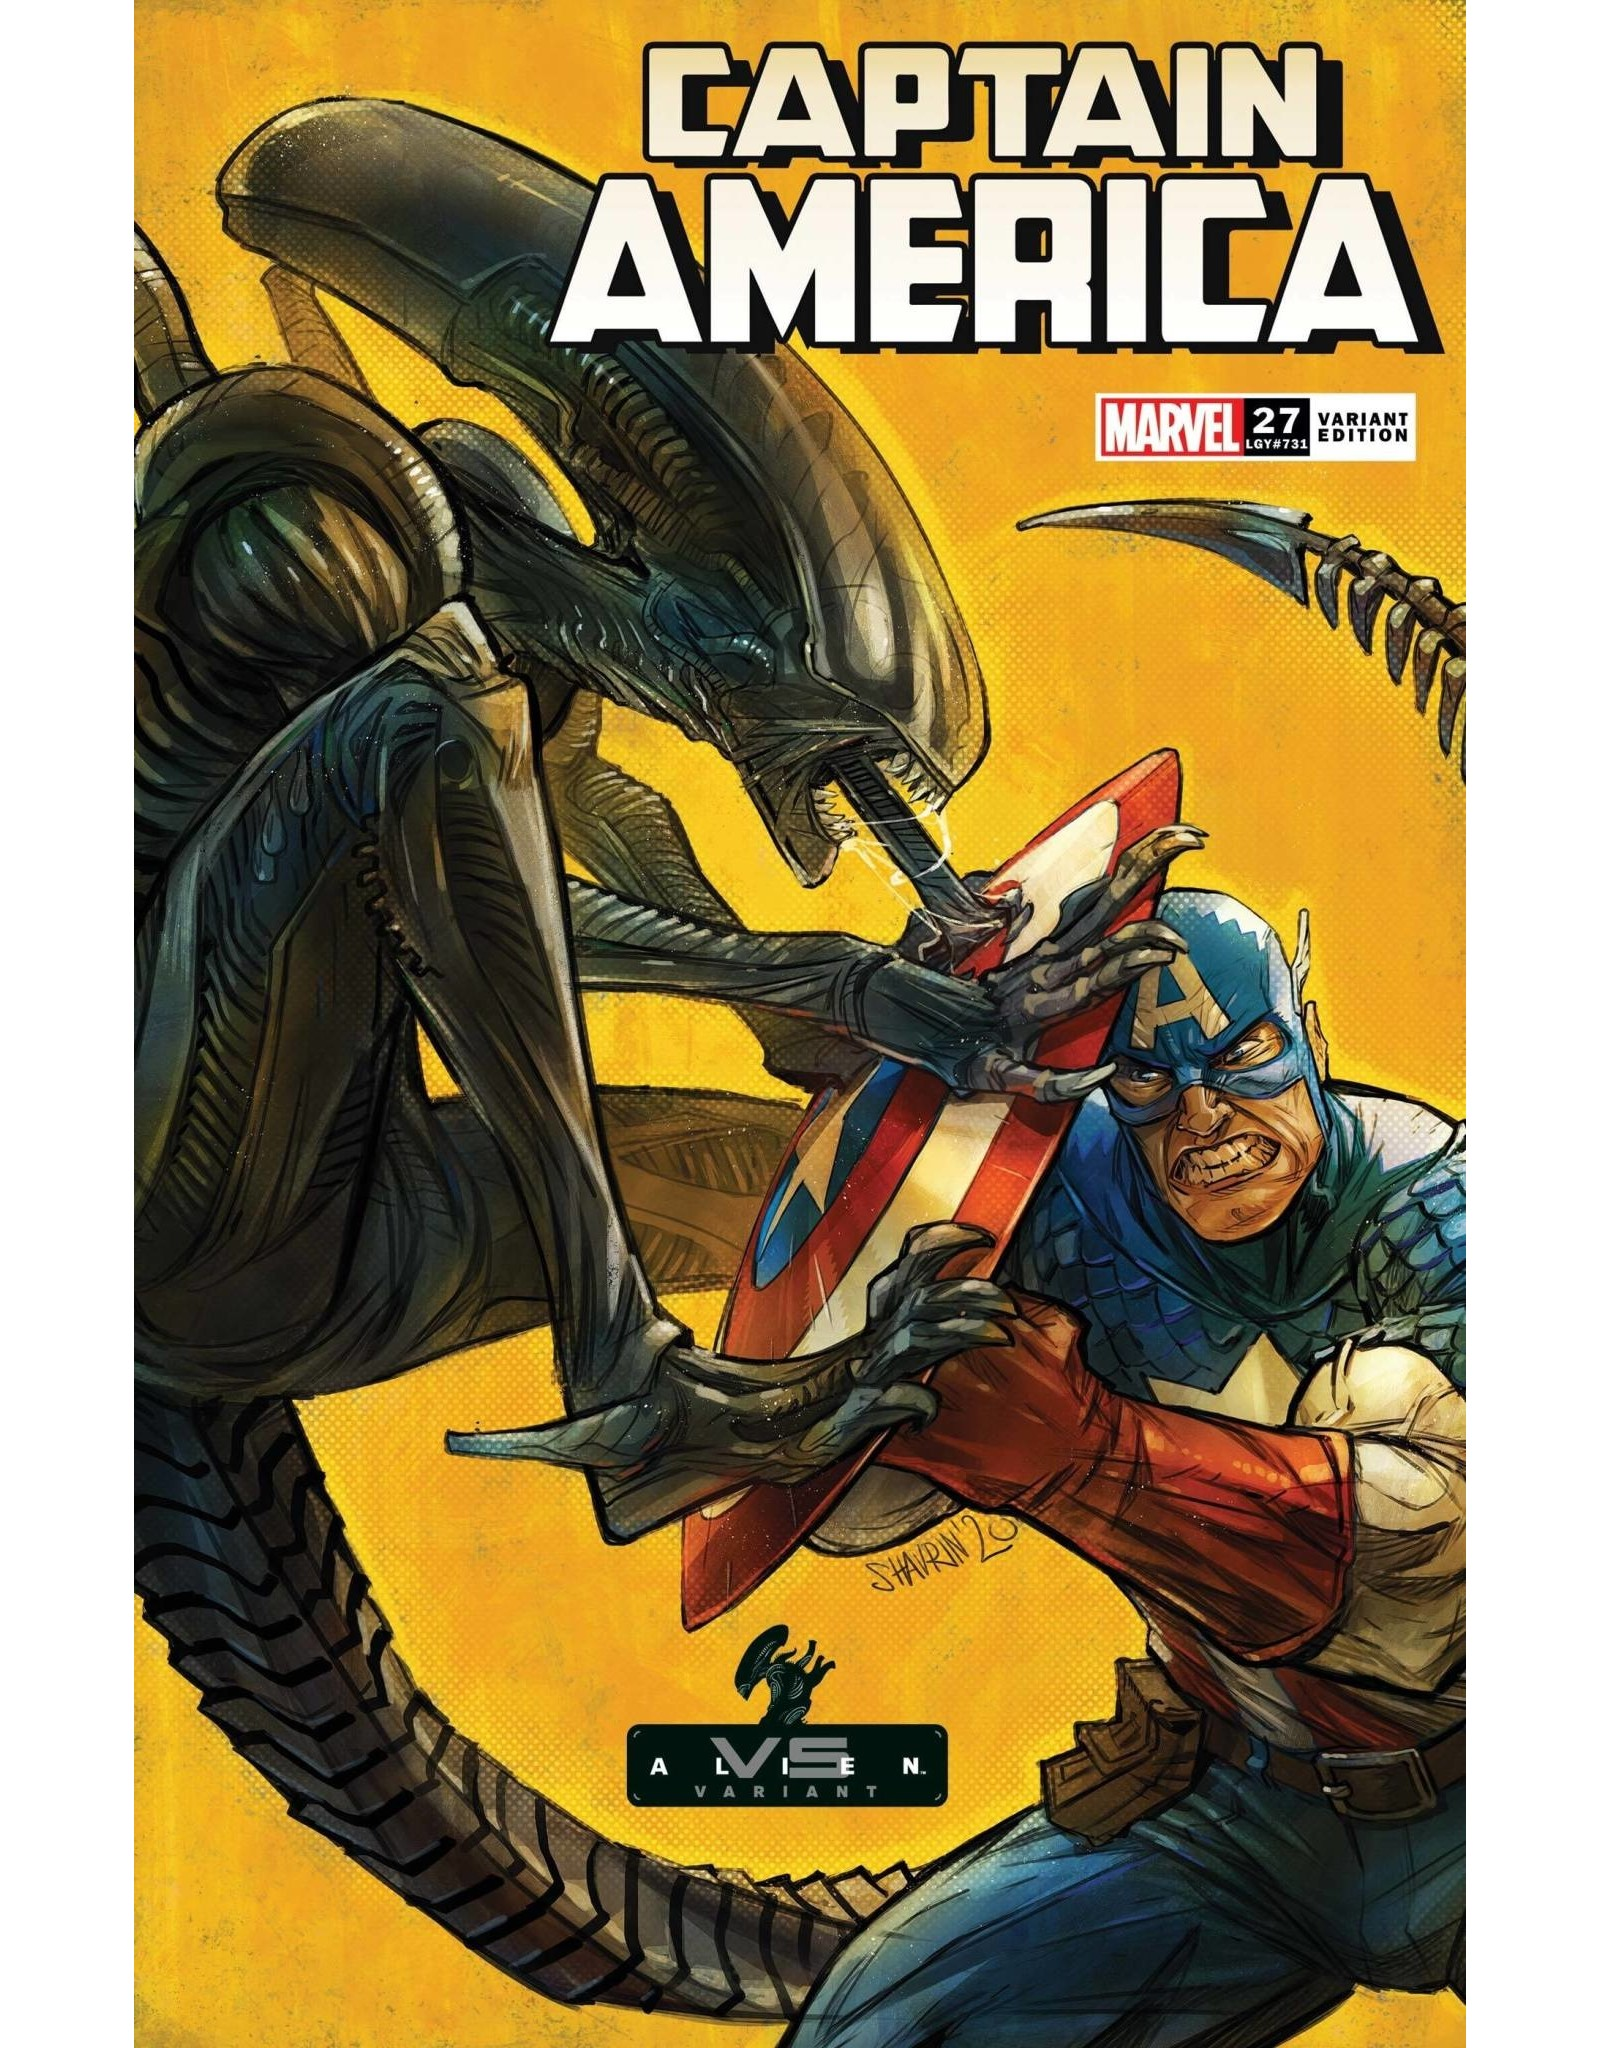 Marvel Comics CAPTAIN AMERICA #27 SHAVRIN MARVEL VS ALIEN VAR